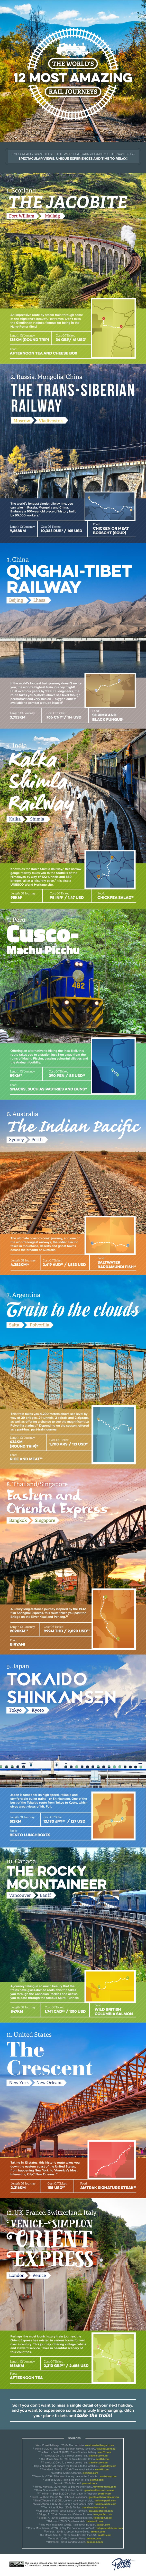 Most Stunning Rail Journeys In The World - Infographic